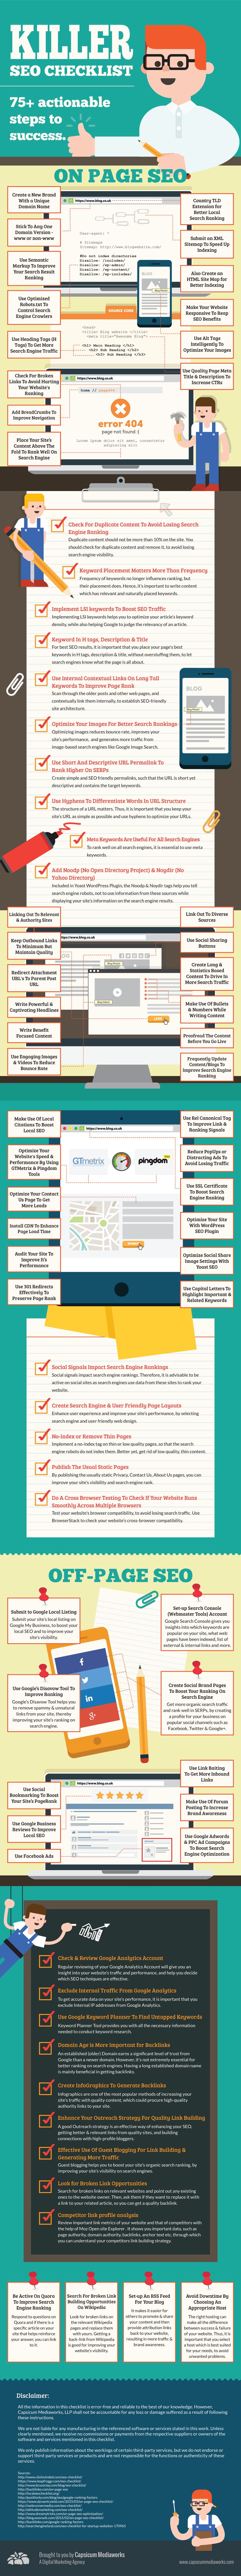 SEO checklist: an infographic for small businesses.